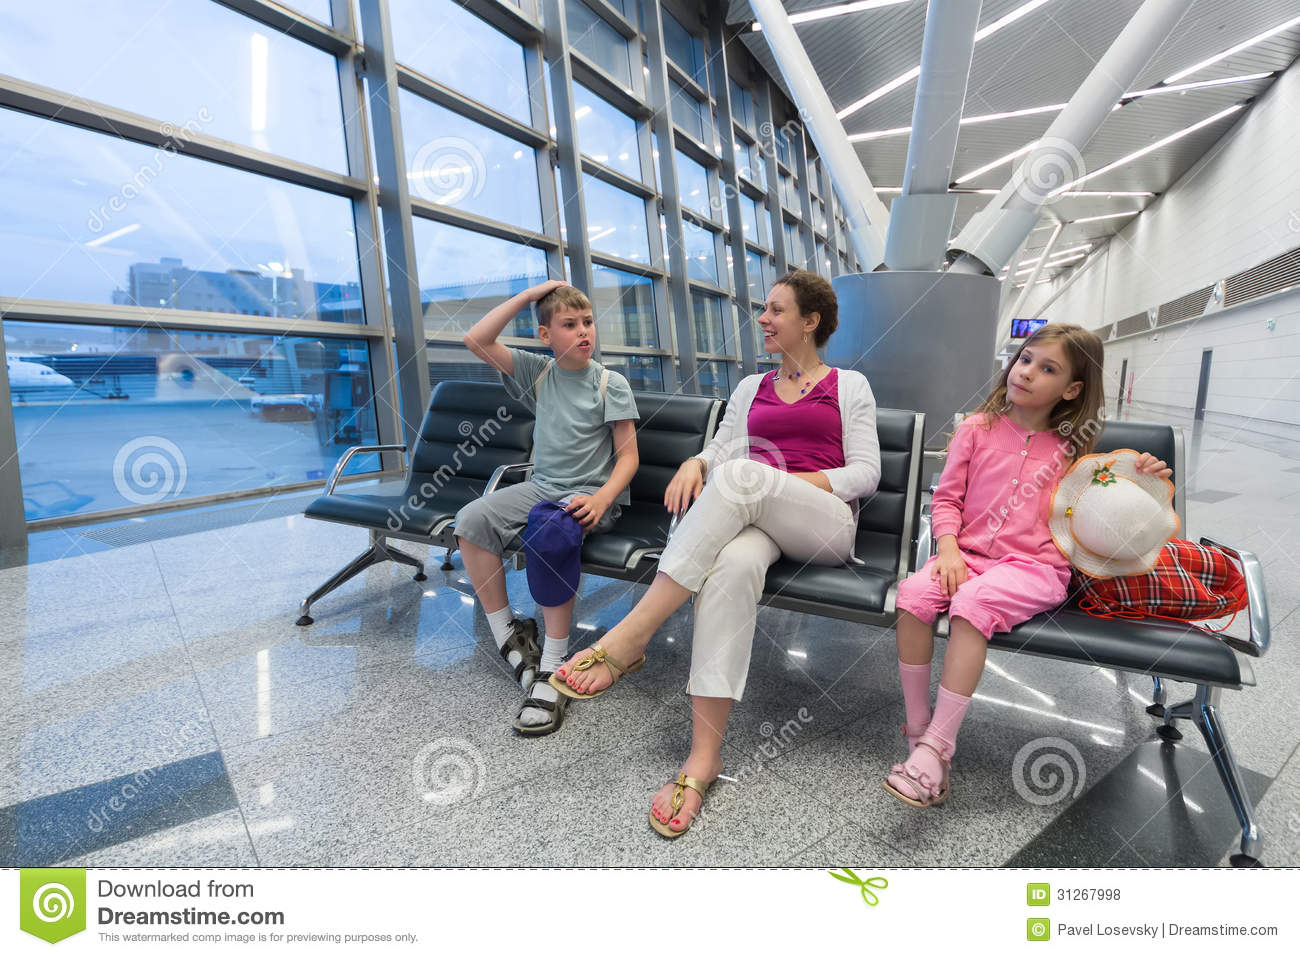 A family sitting in a recreation area